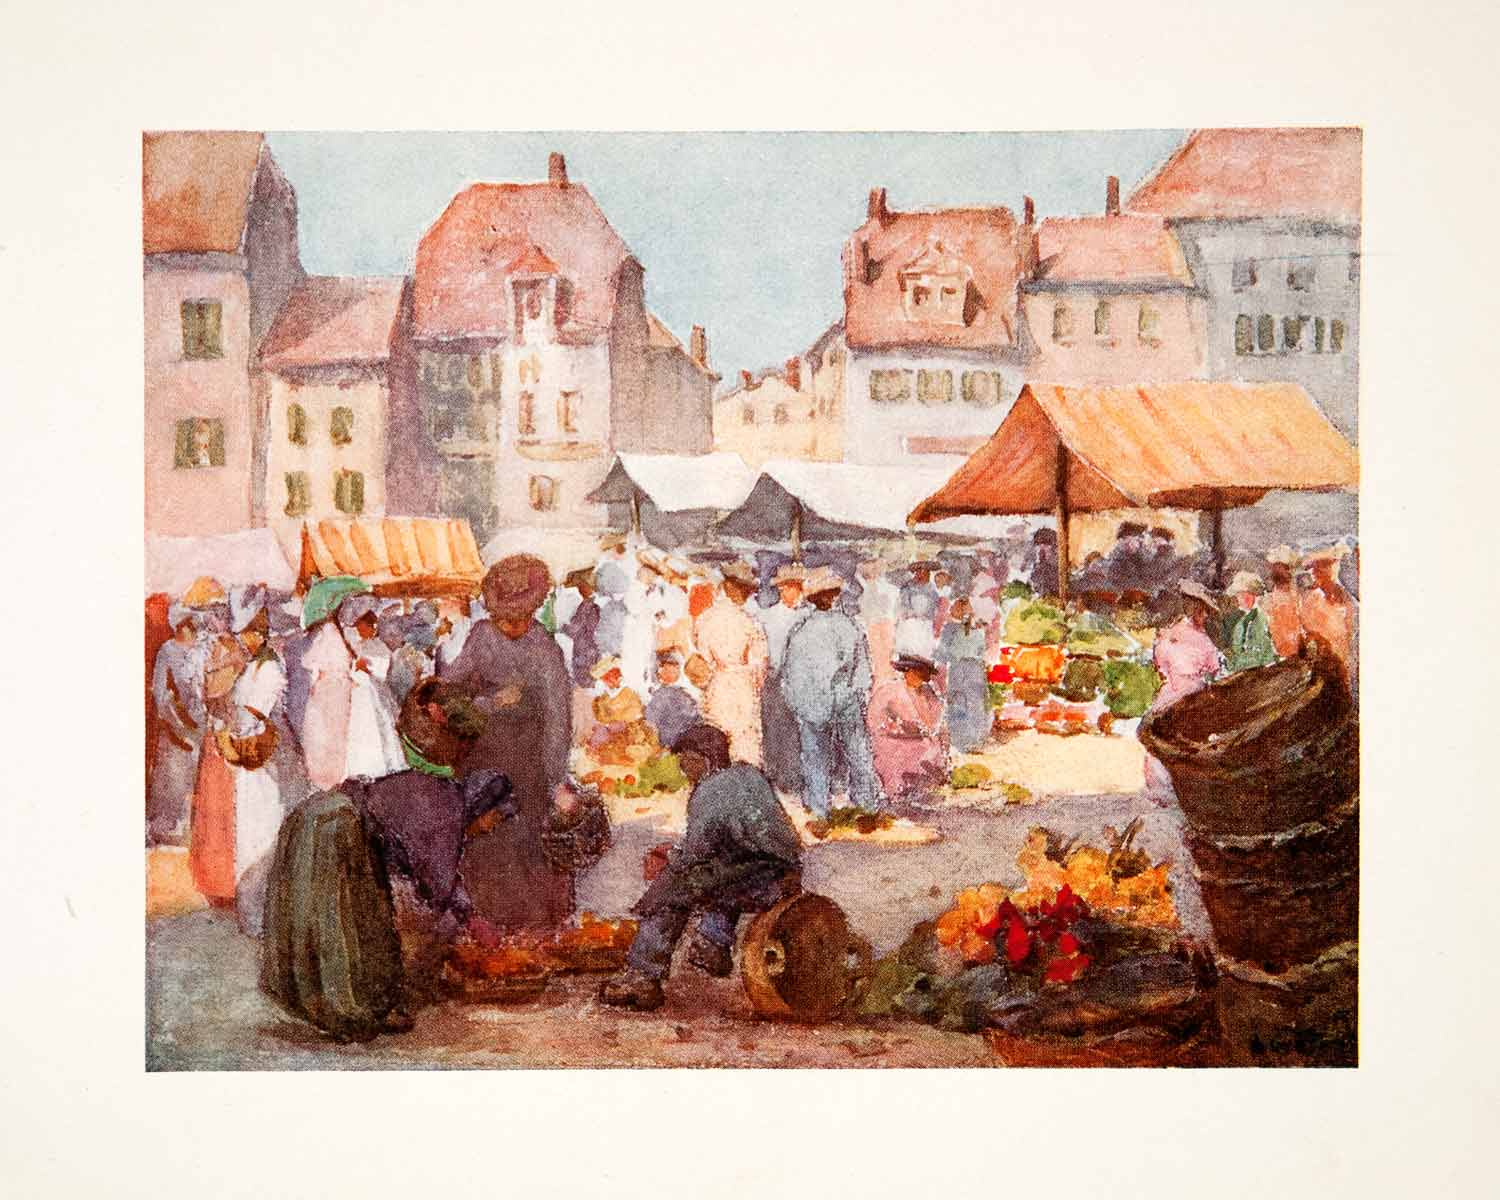 1908 Color Print Vevey Switzerland Marketplace Bazaar May Hardwicke Lewis XGQB1